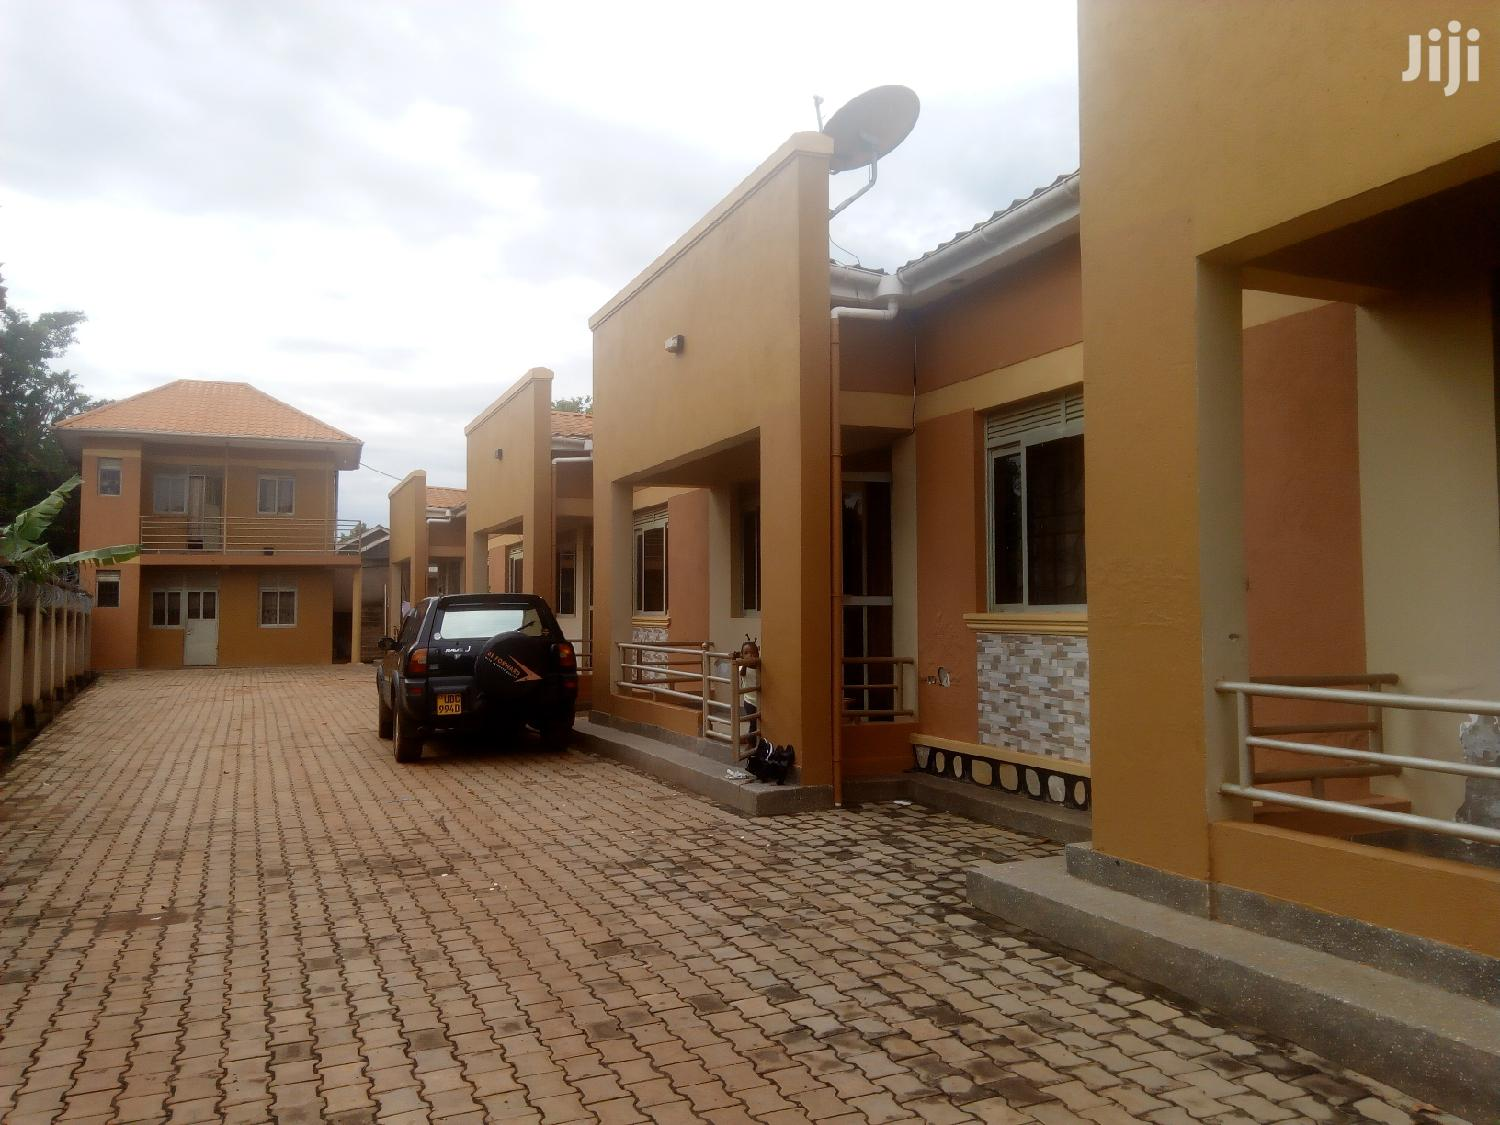 Two Bedrooms Self Contained House For Rent At Bweyogerere